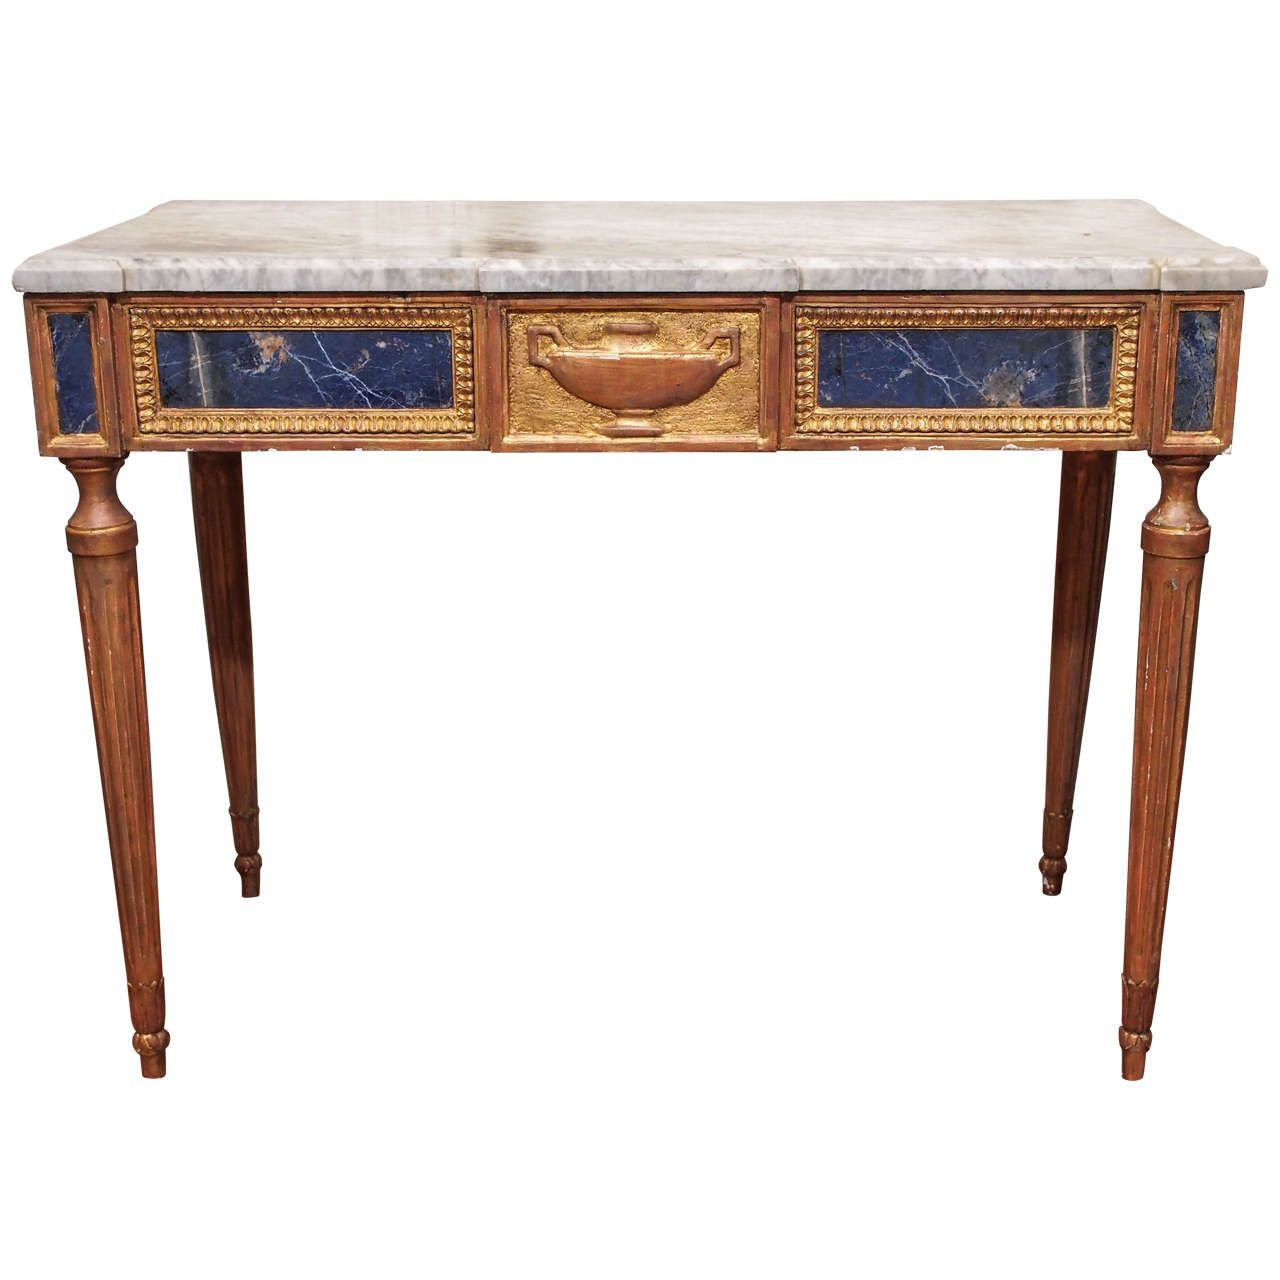 Affordable Vintage Furniture: Italian Louis Xvi Console Table With Lapis Lazuli Panels